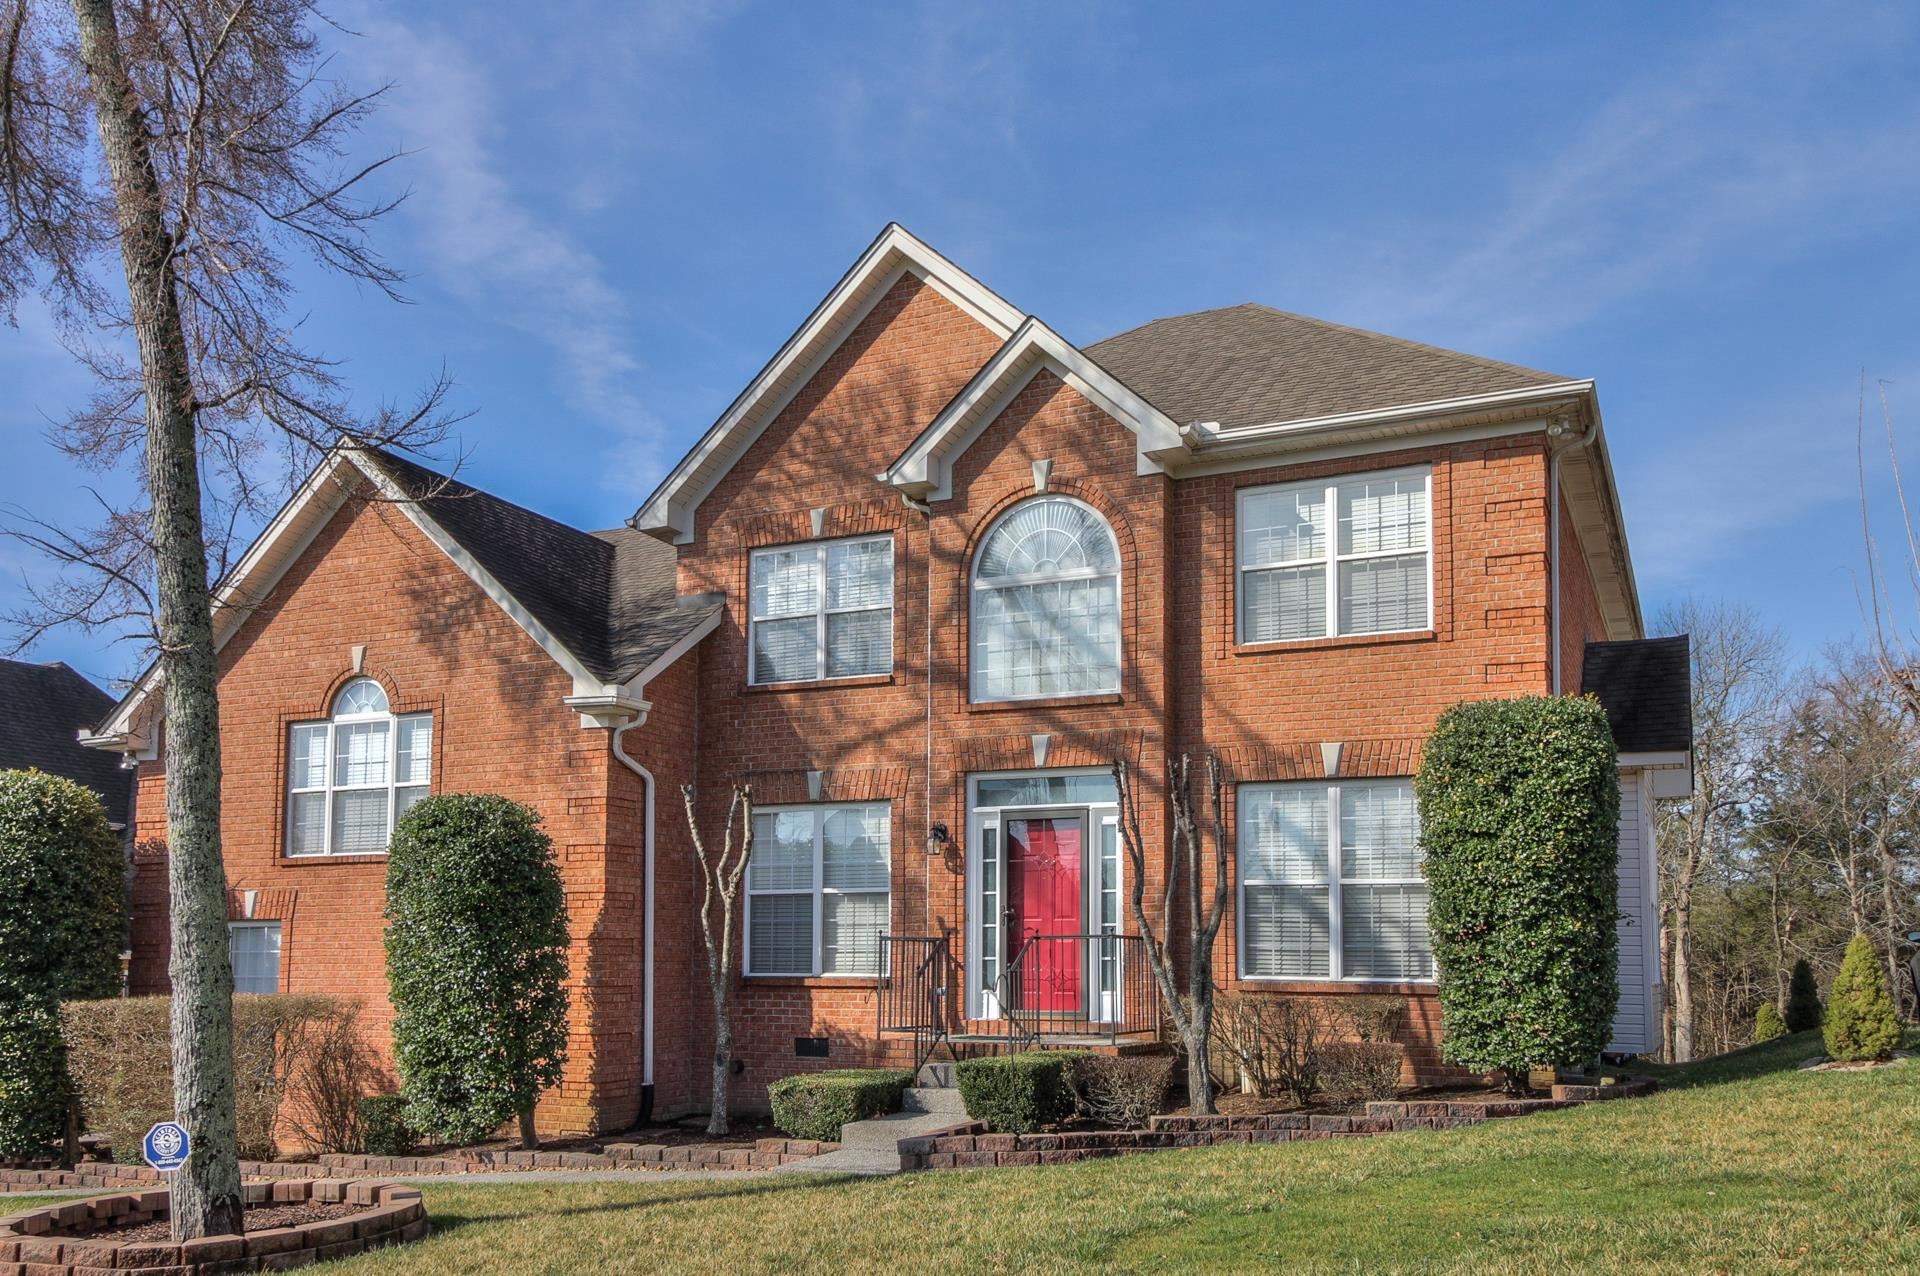 152 N Wynridge Way, Goodlettsville, Tennessee